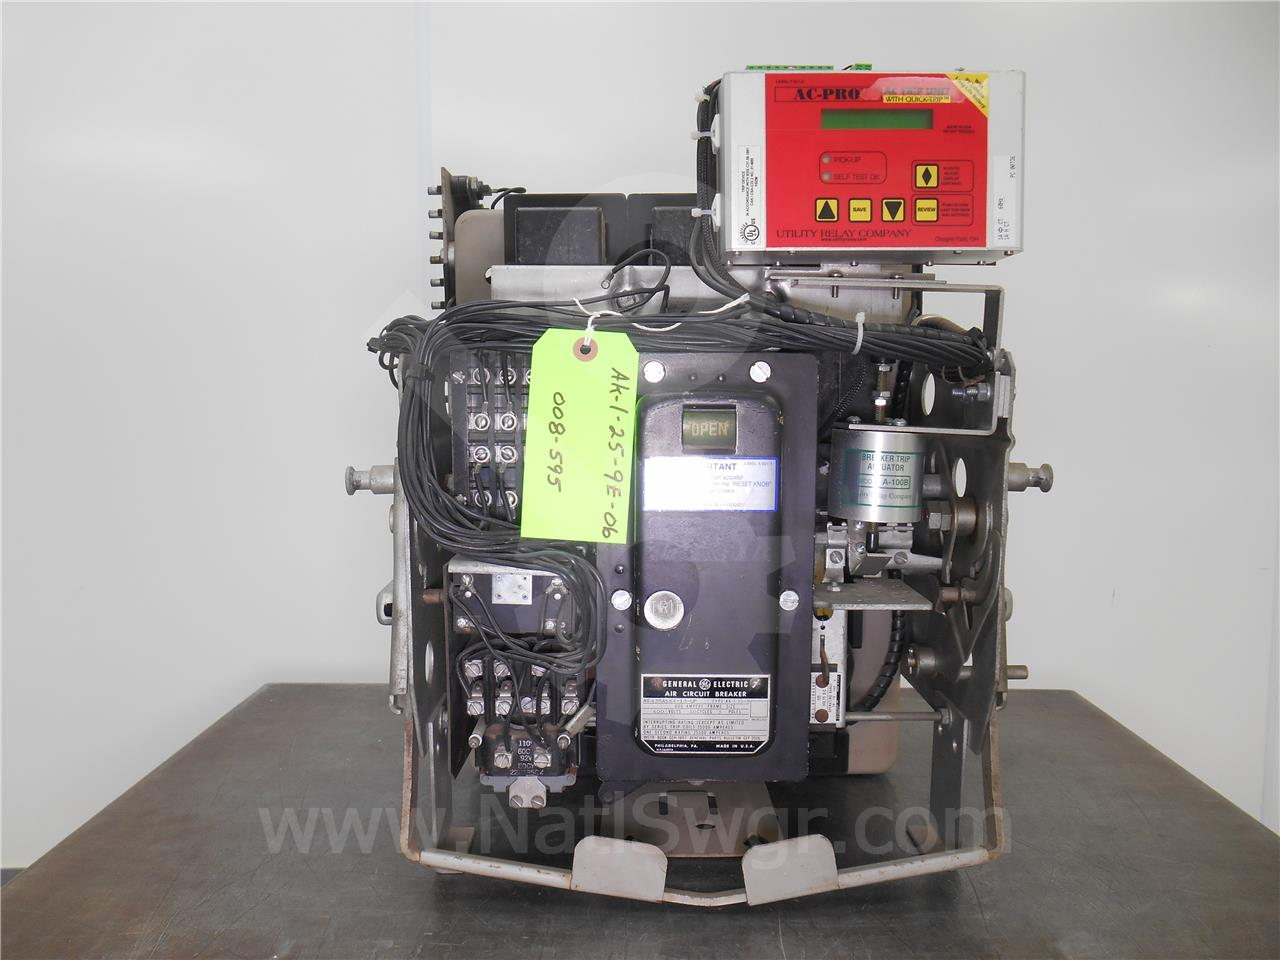 008 595 600a ge ak 1 25 9 eo do national switchgear  at aneh.co